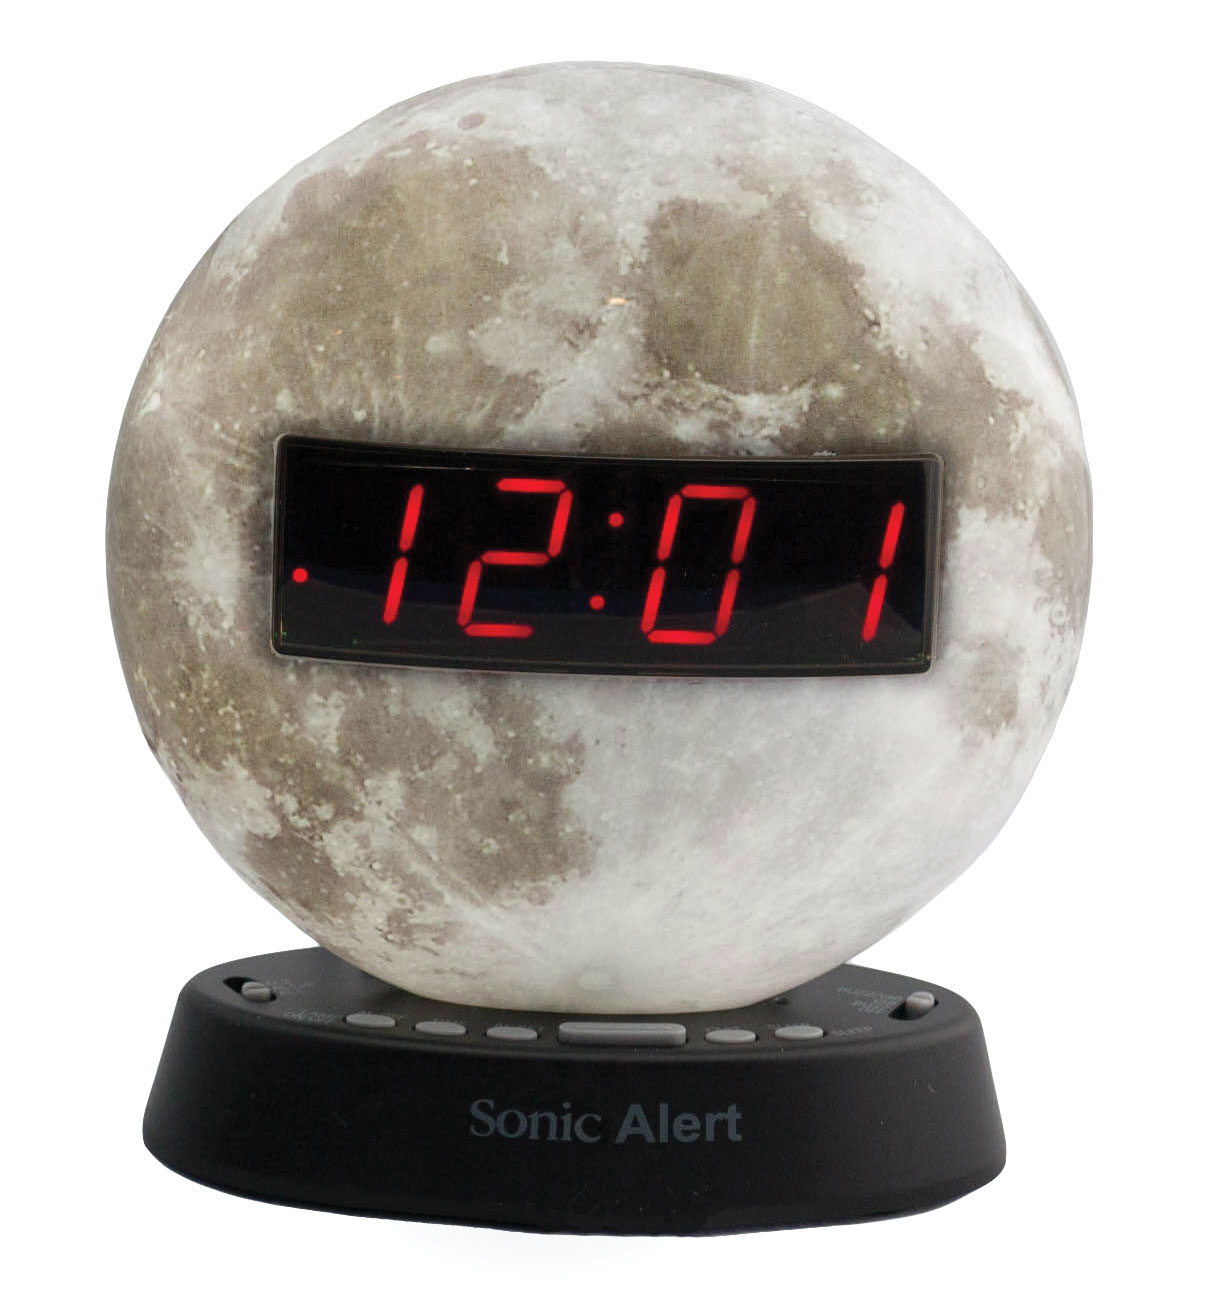 The Sonic Glow Moonlight Alarm Clock with Recordable Alarm